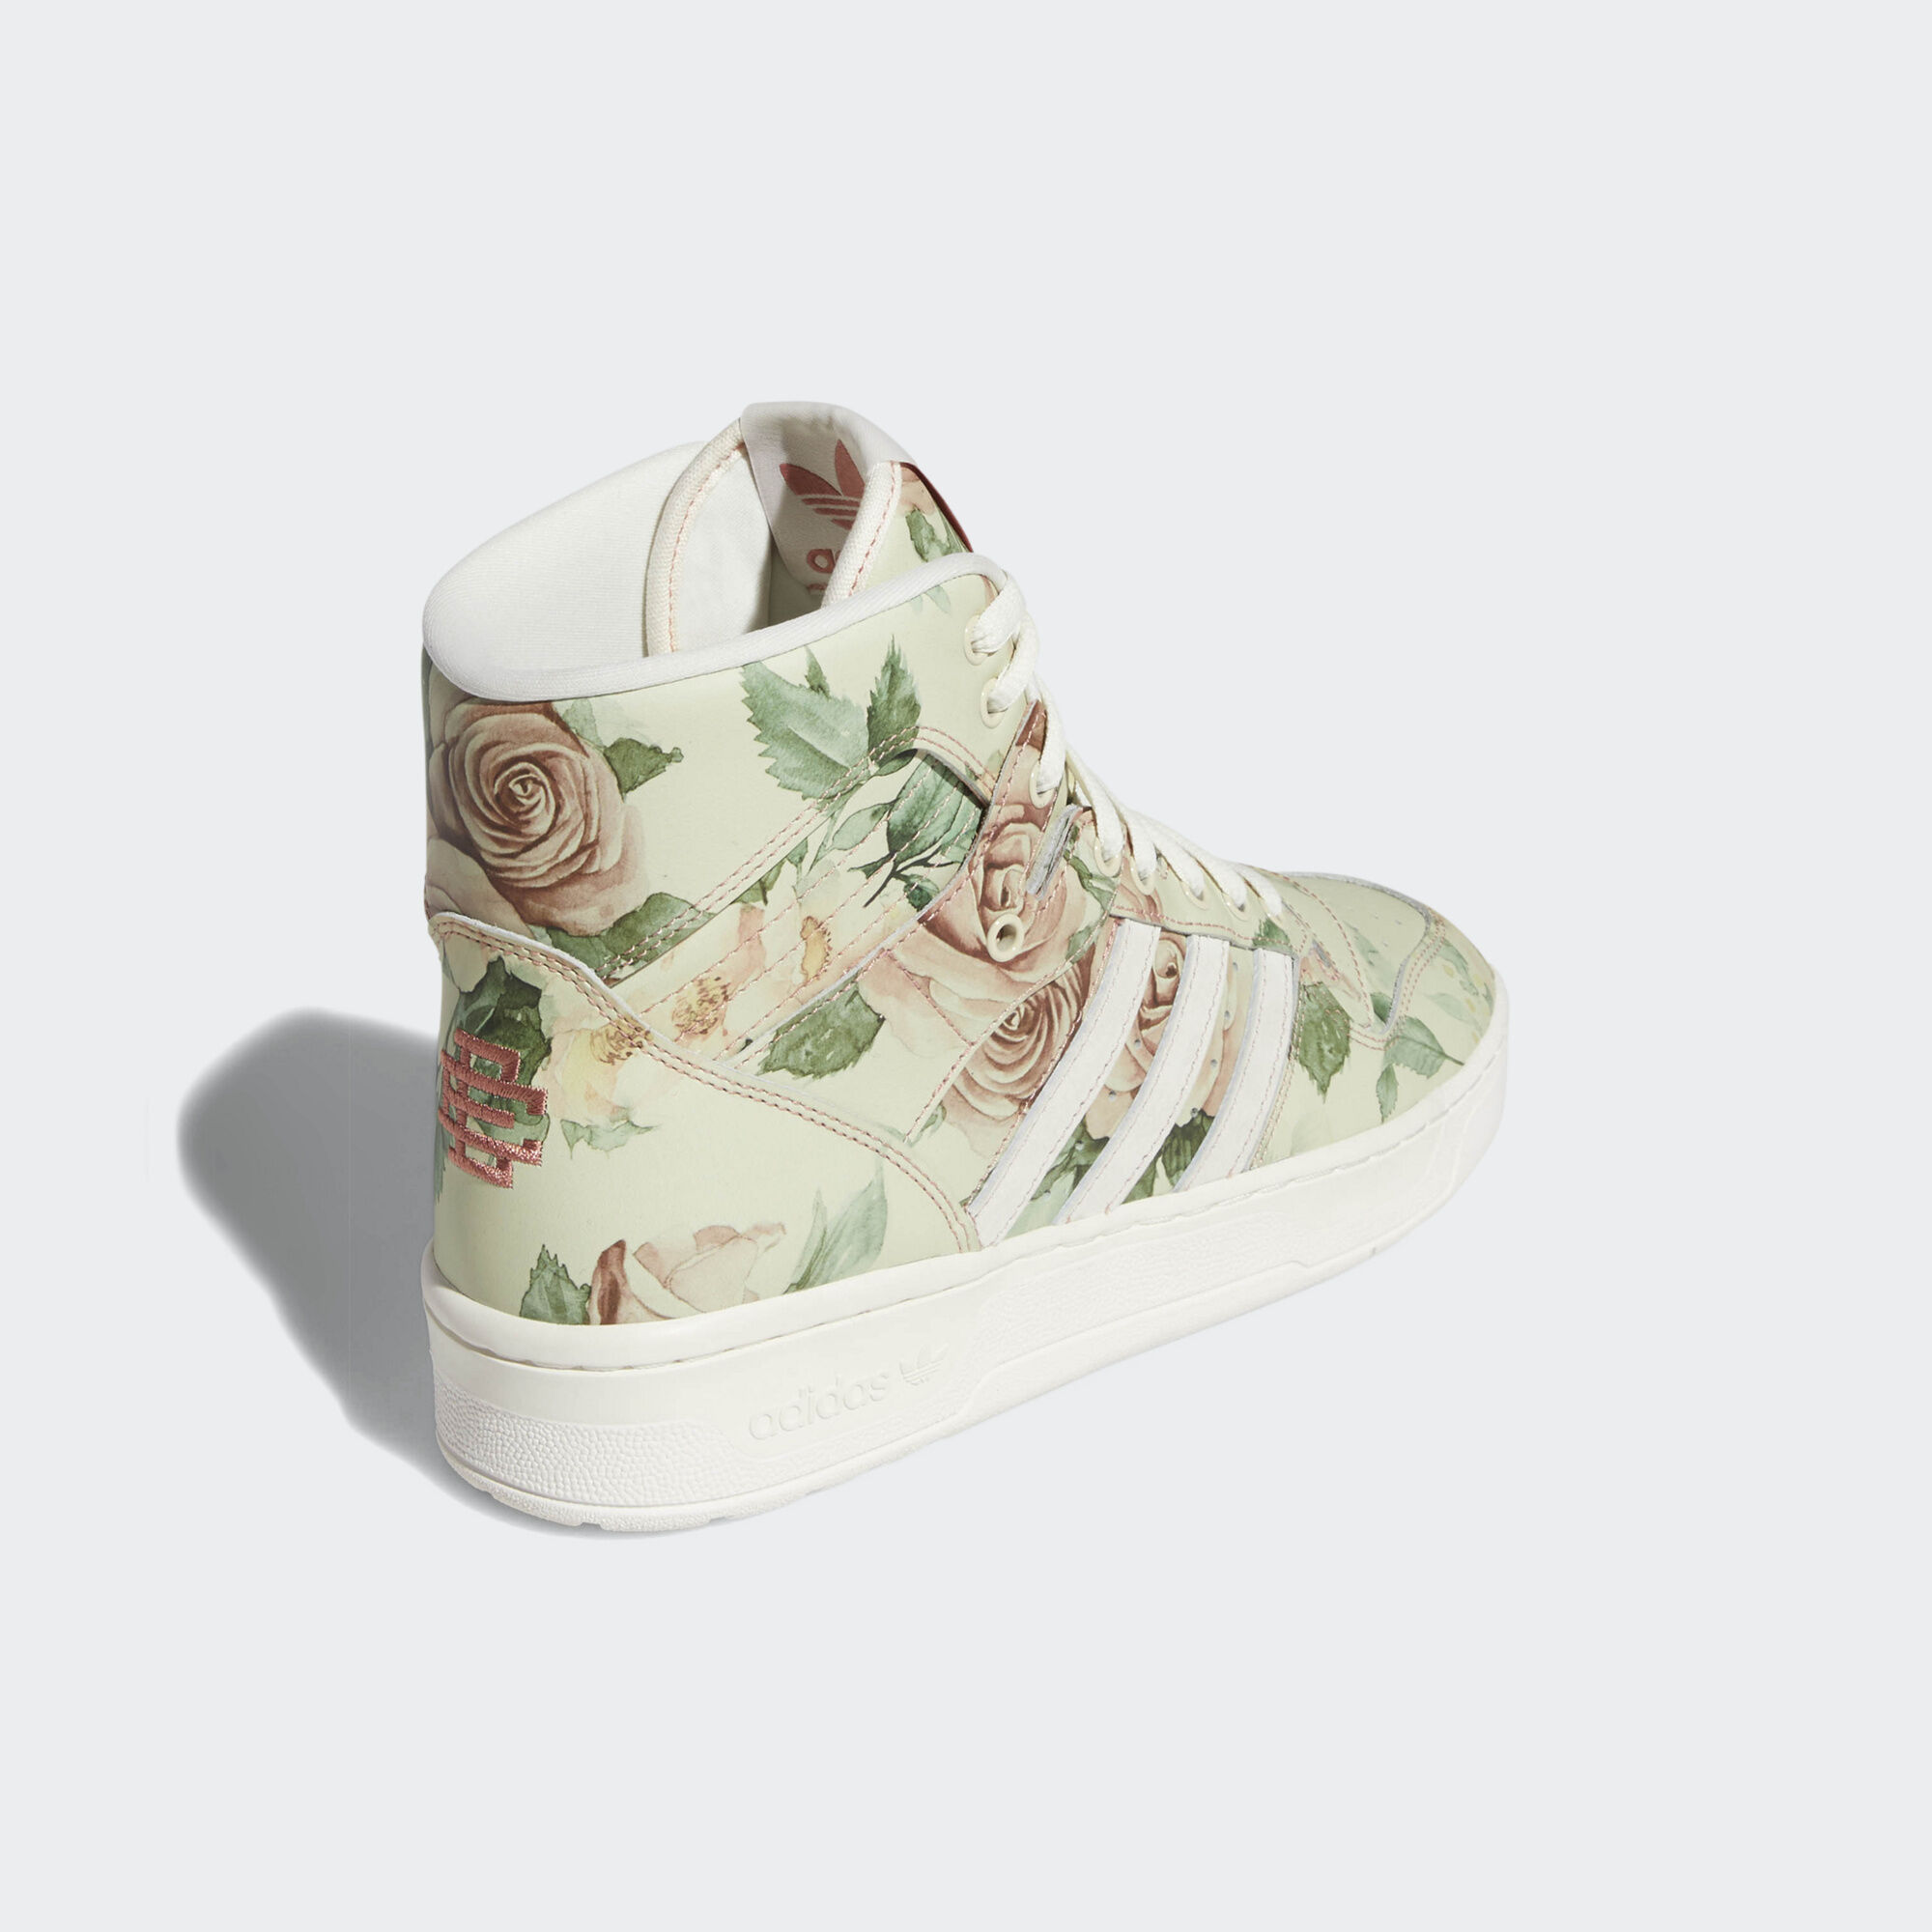 Adidas Eric Emanuel Rivalry Hi OG Off White / Raw Pink / Cloud White (F35092)